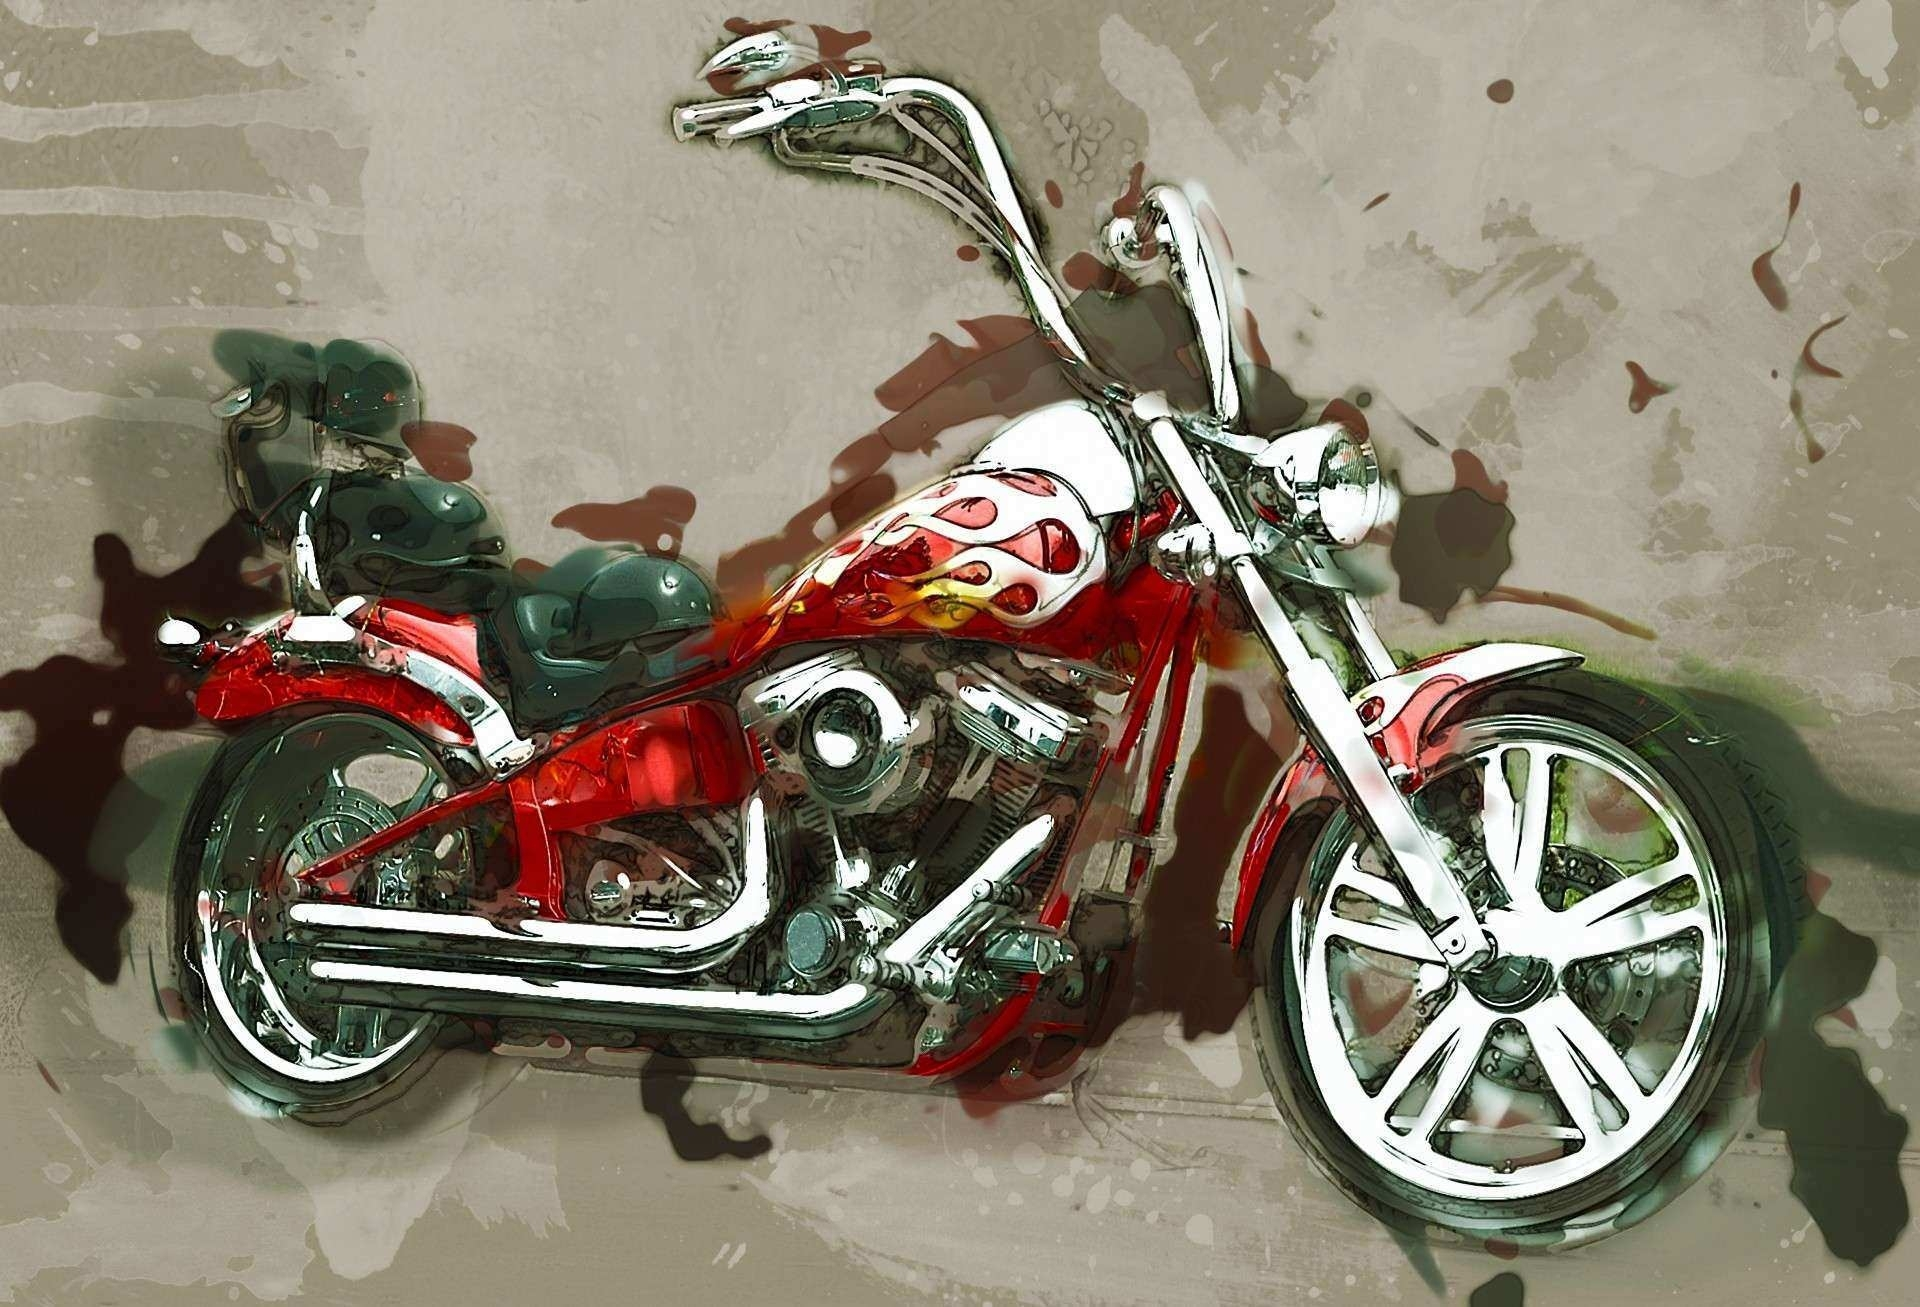 Harley Davidson Prints Wall Art New 5 Piece Canvas Art Motorcycle intended for Motorcycle Wall Art (Image 6 of 20)